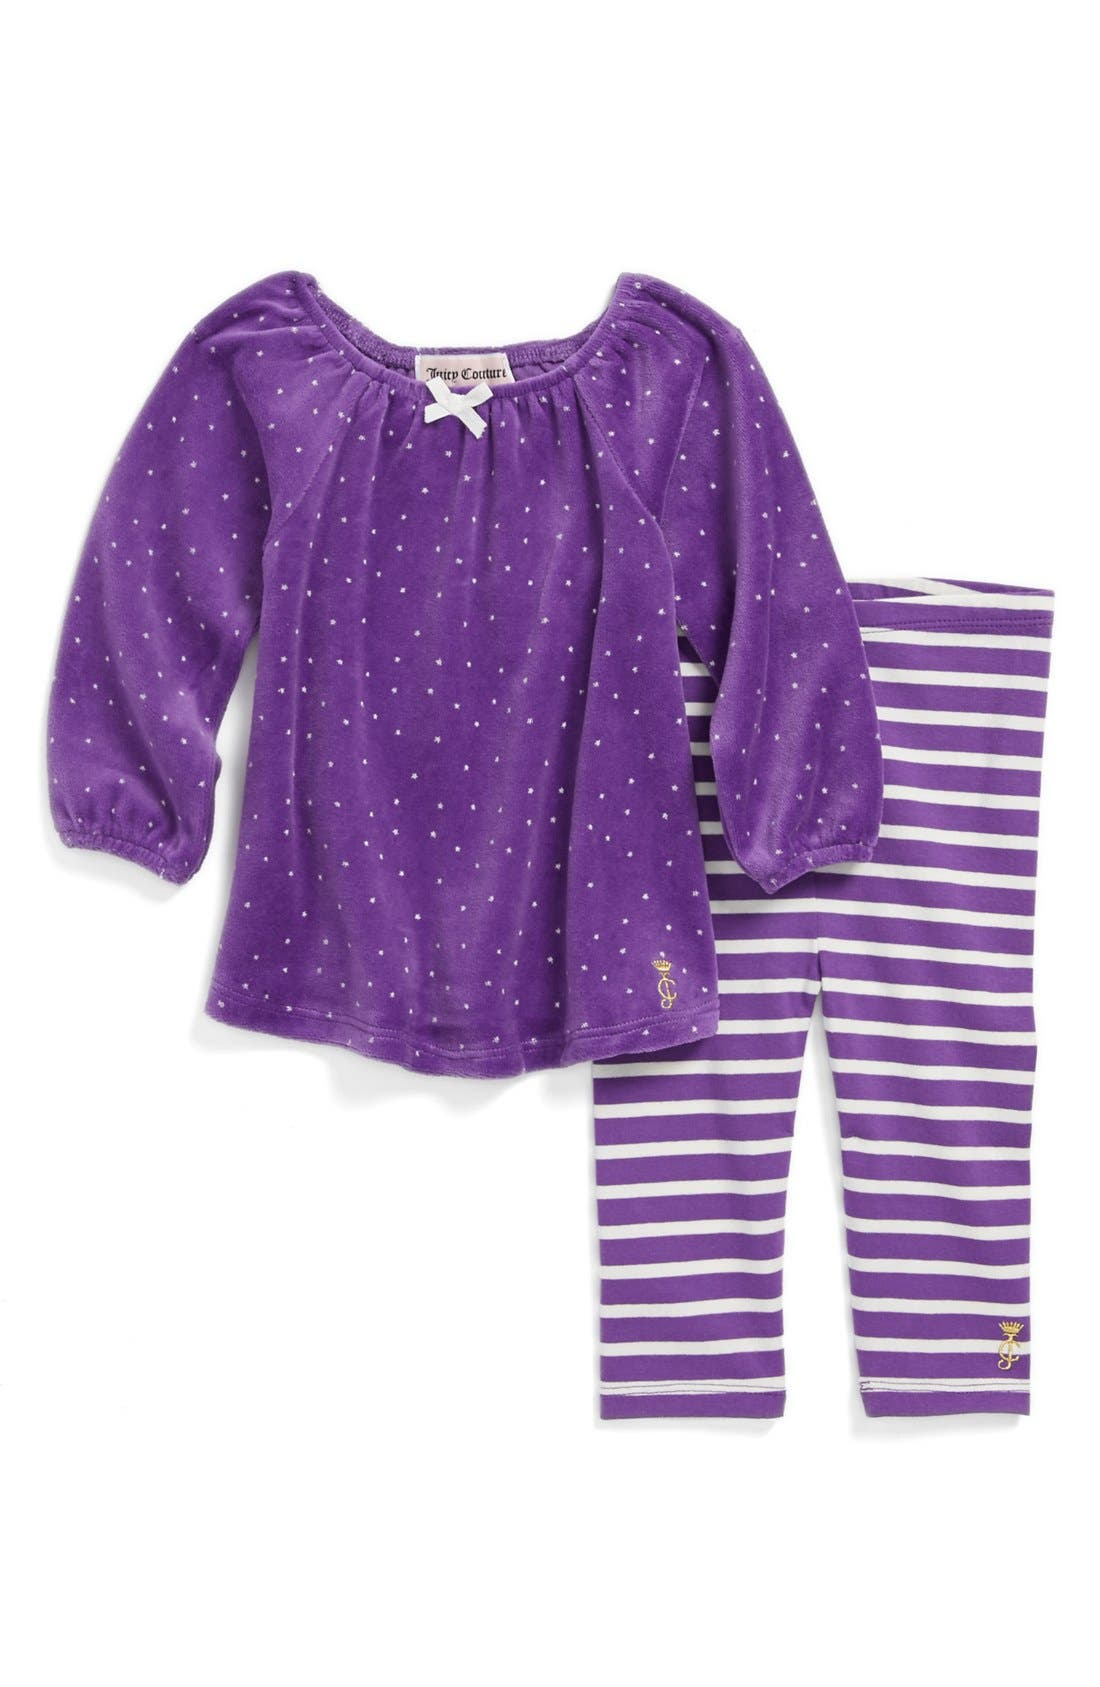 Alternate Image 1 Selected - Juicy Couture Top & Leggings (Baby Girls)